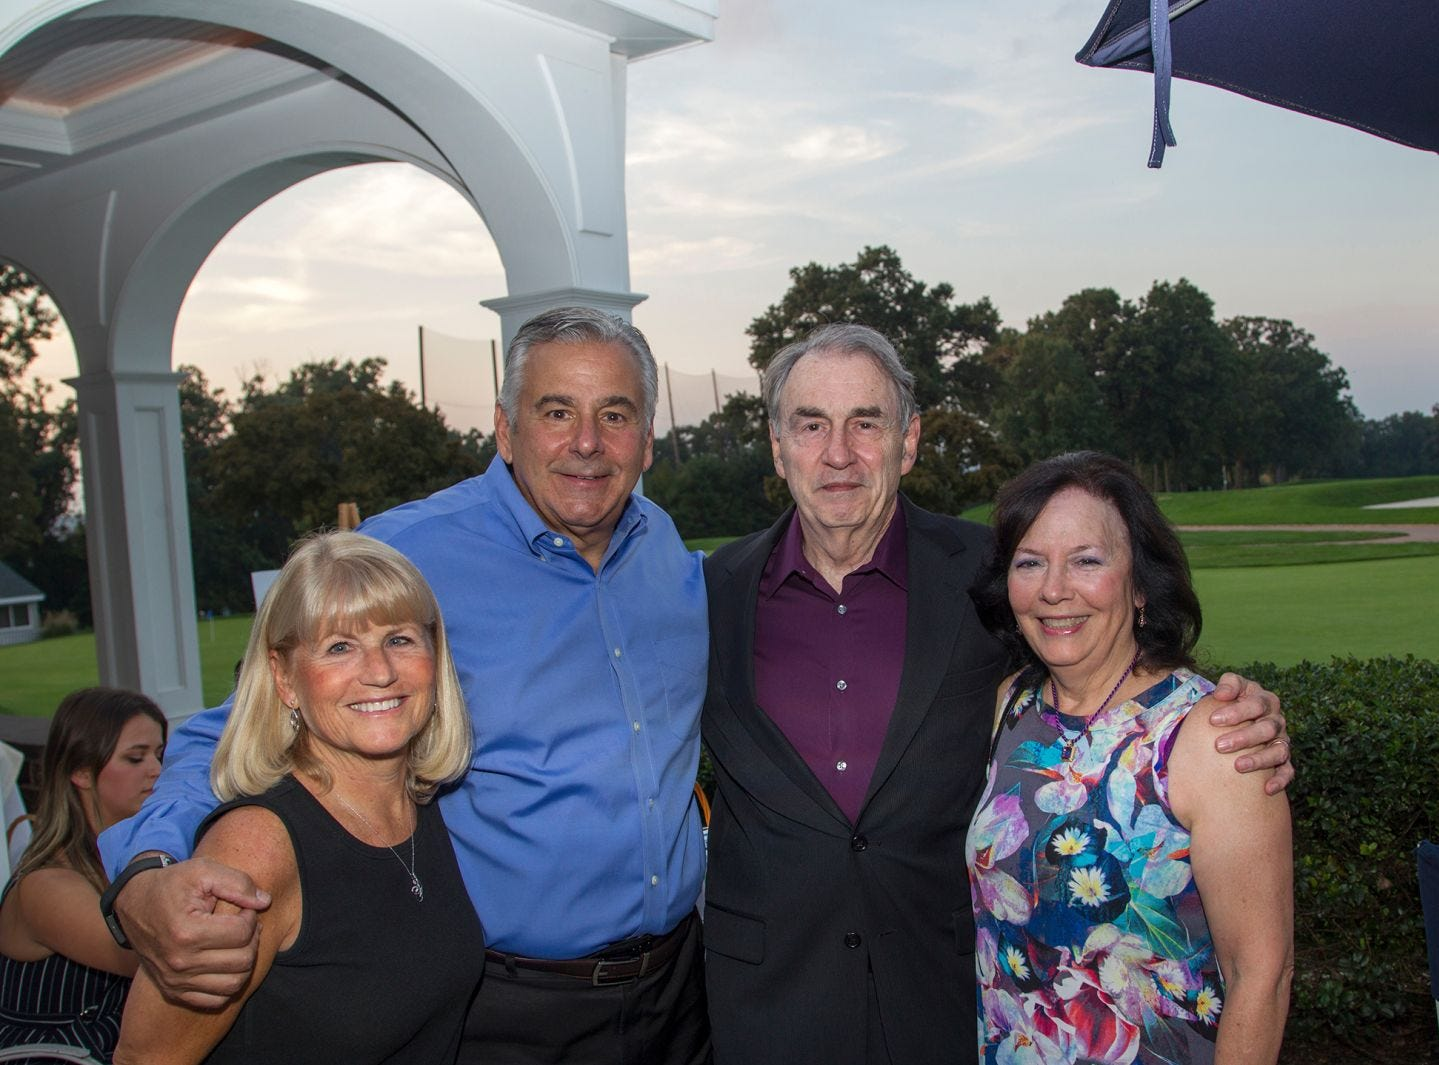 Diane and Frank Lento, Barry and Janet Arena. Institute for Educational Achievement held its 23rd annual Golf Classic at Hackensack Golf Club in Oradell. 10/01/2018